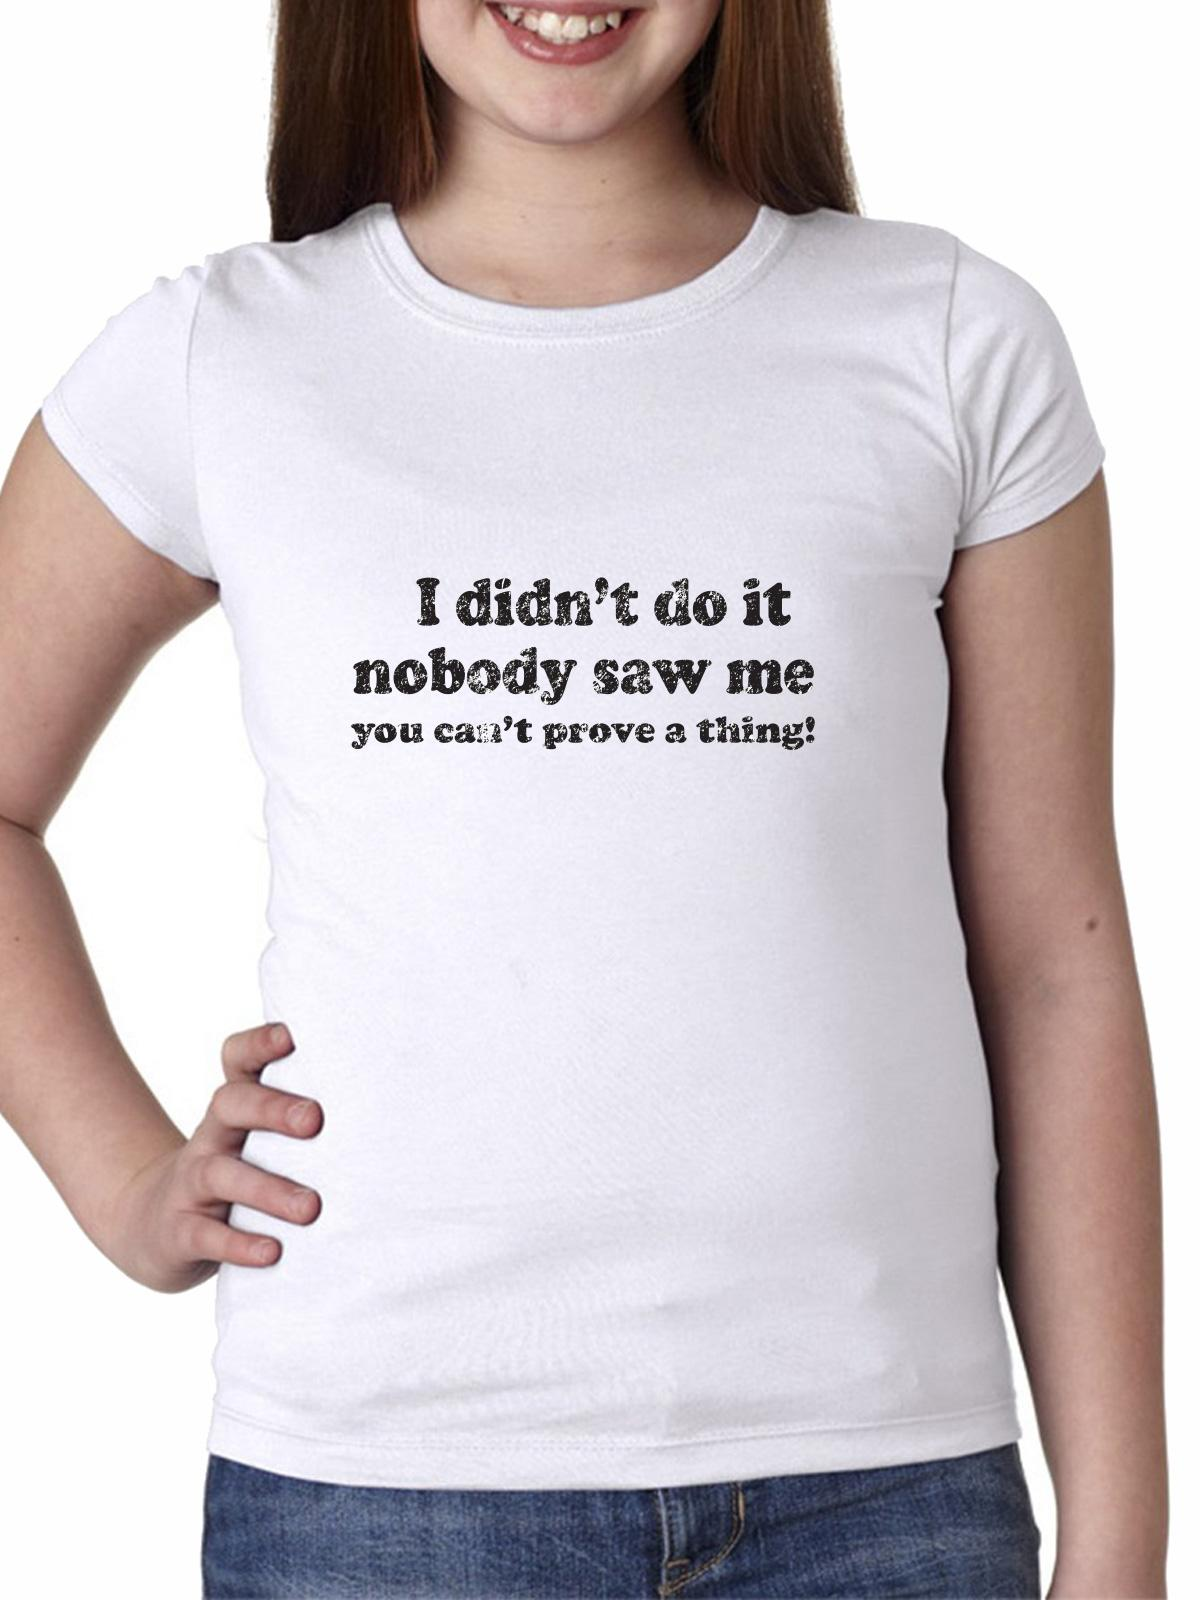 I Didn't Do It Nobody Saw Me You Can't Prove a Thing! Girl's Cotton Youth T-Shirt